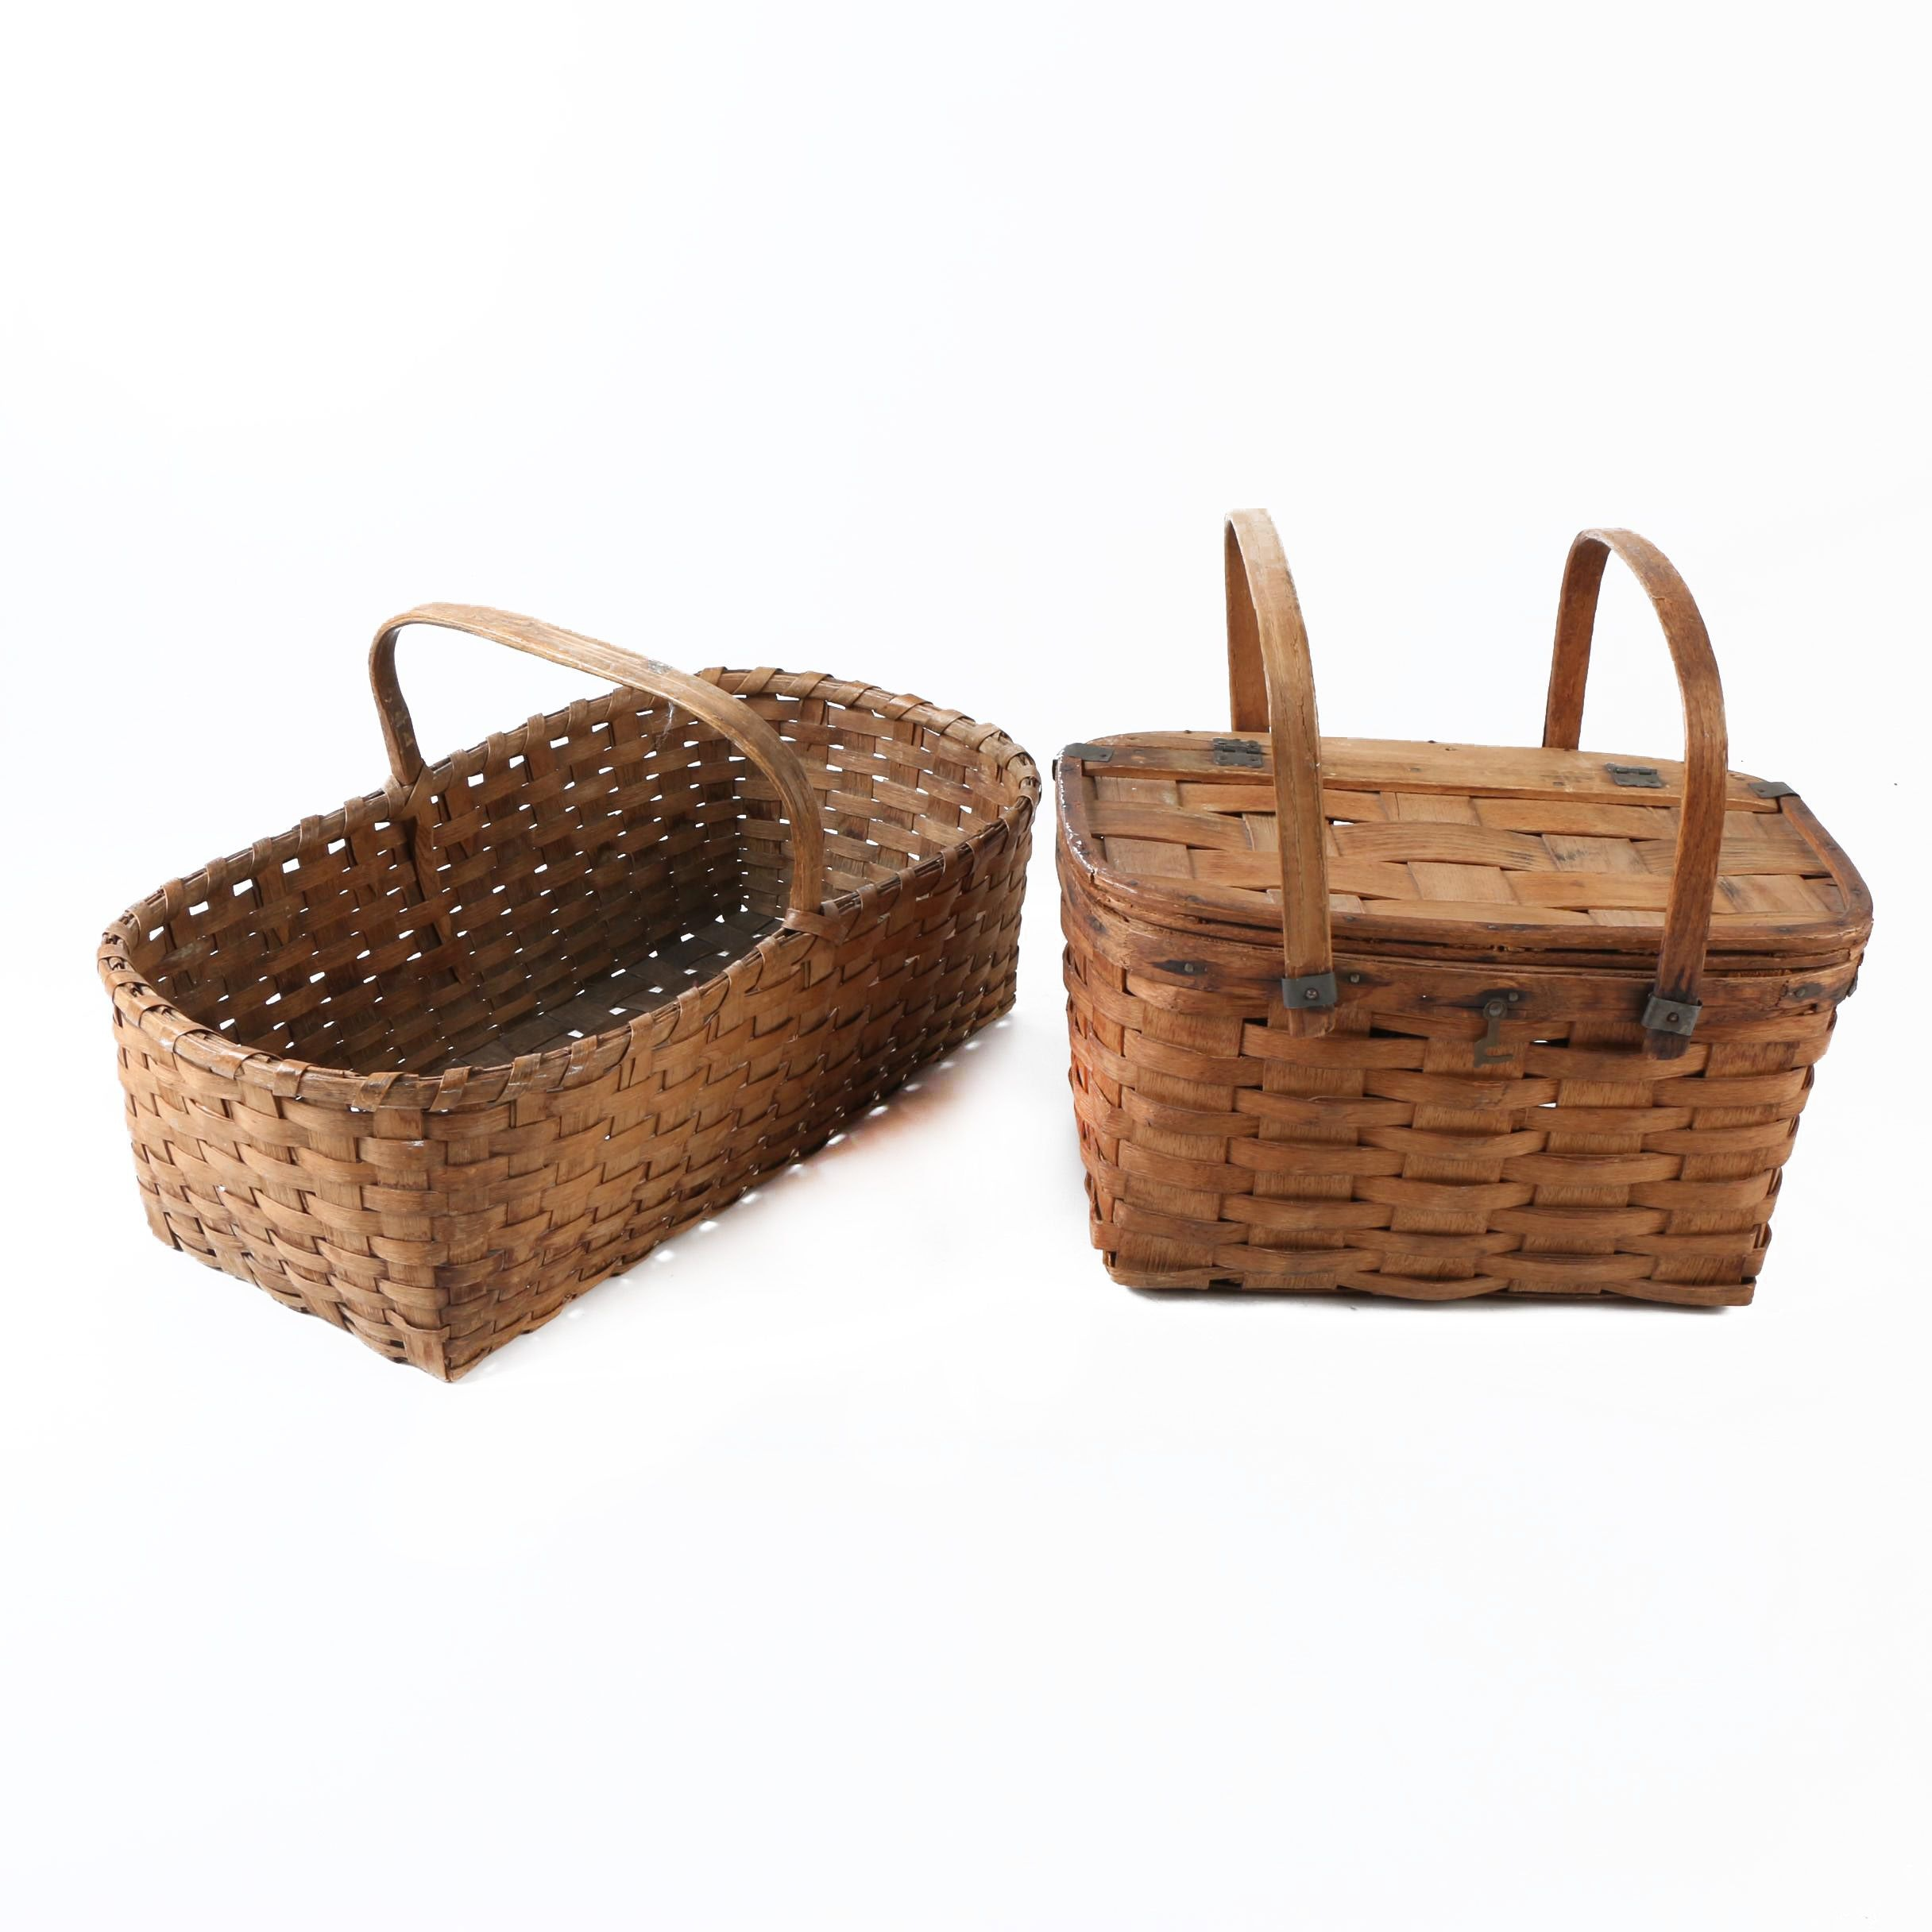 Vintage Woven Picnic Style Baskets with Handles